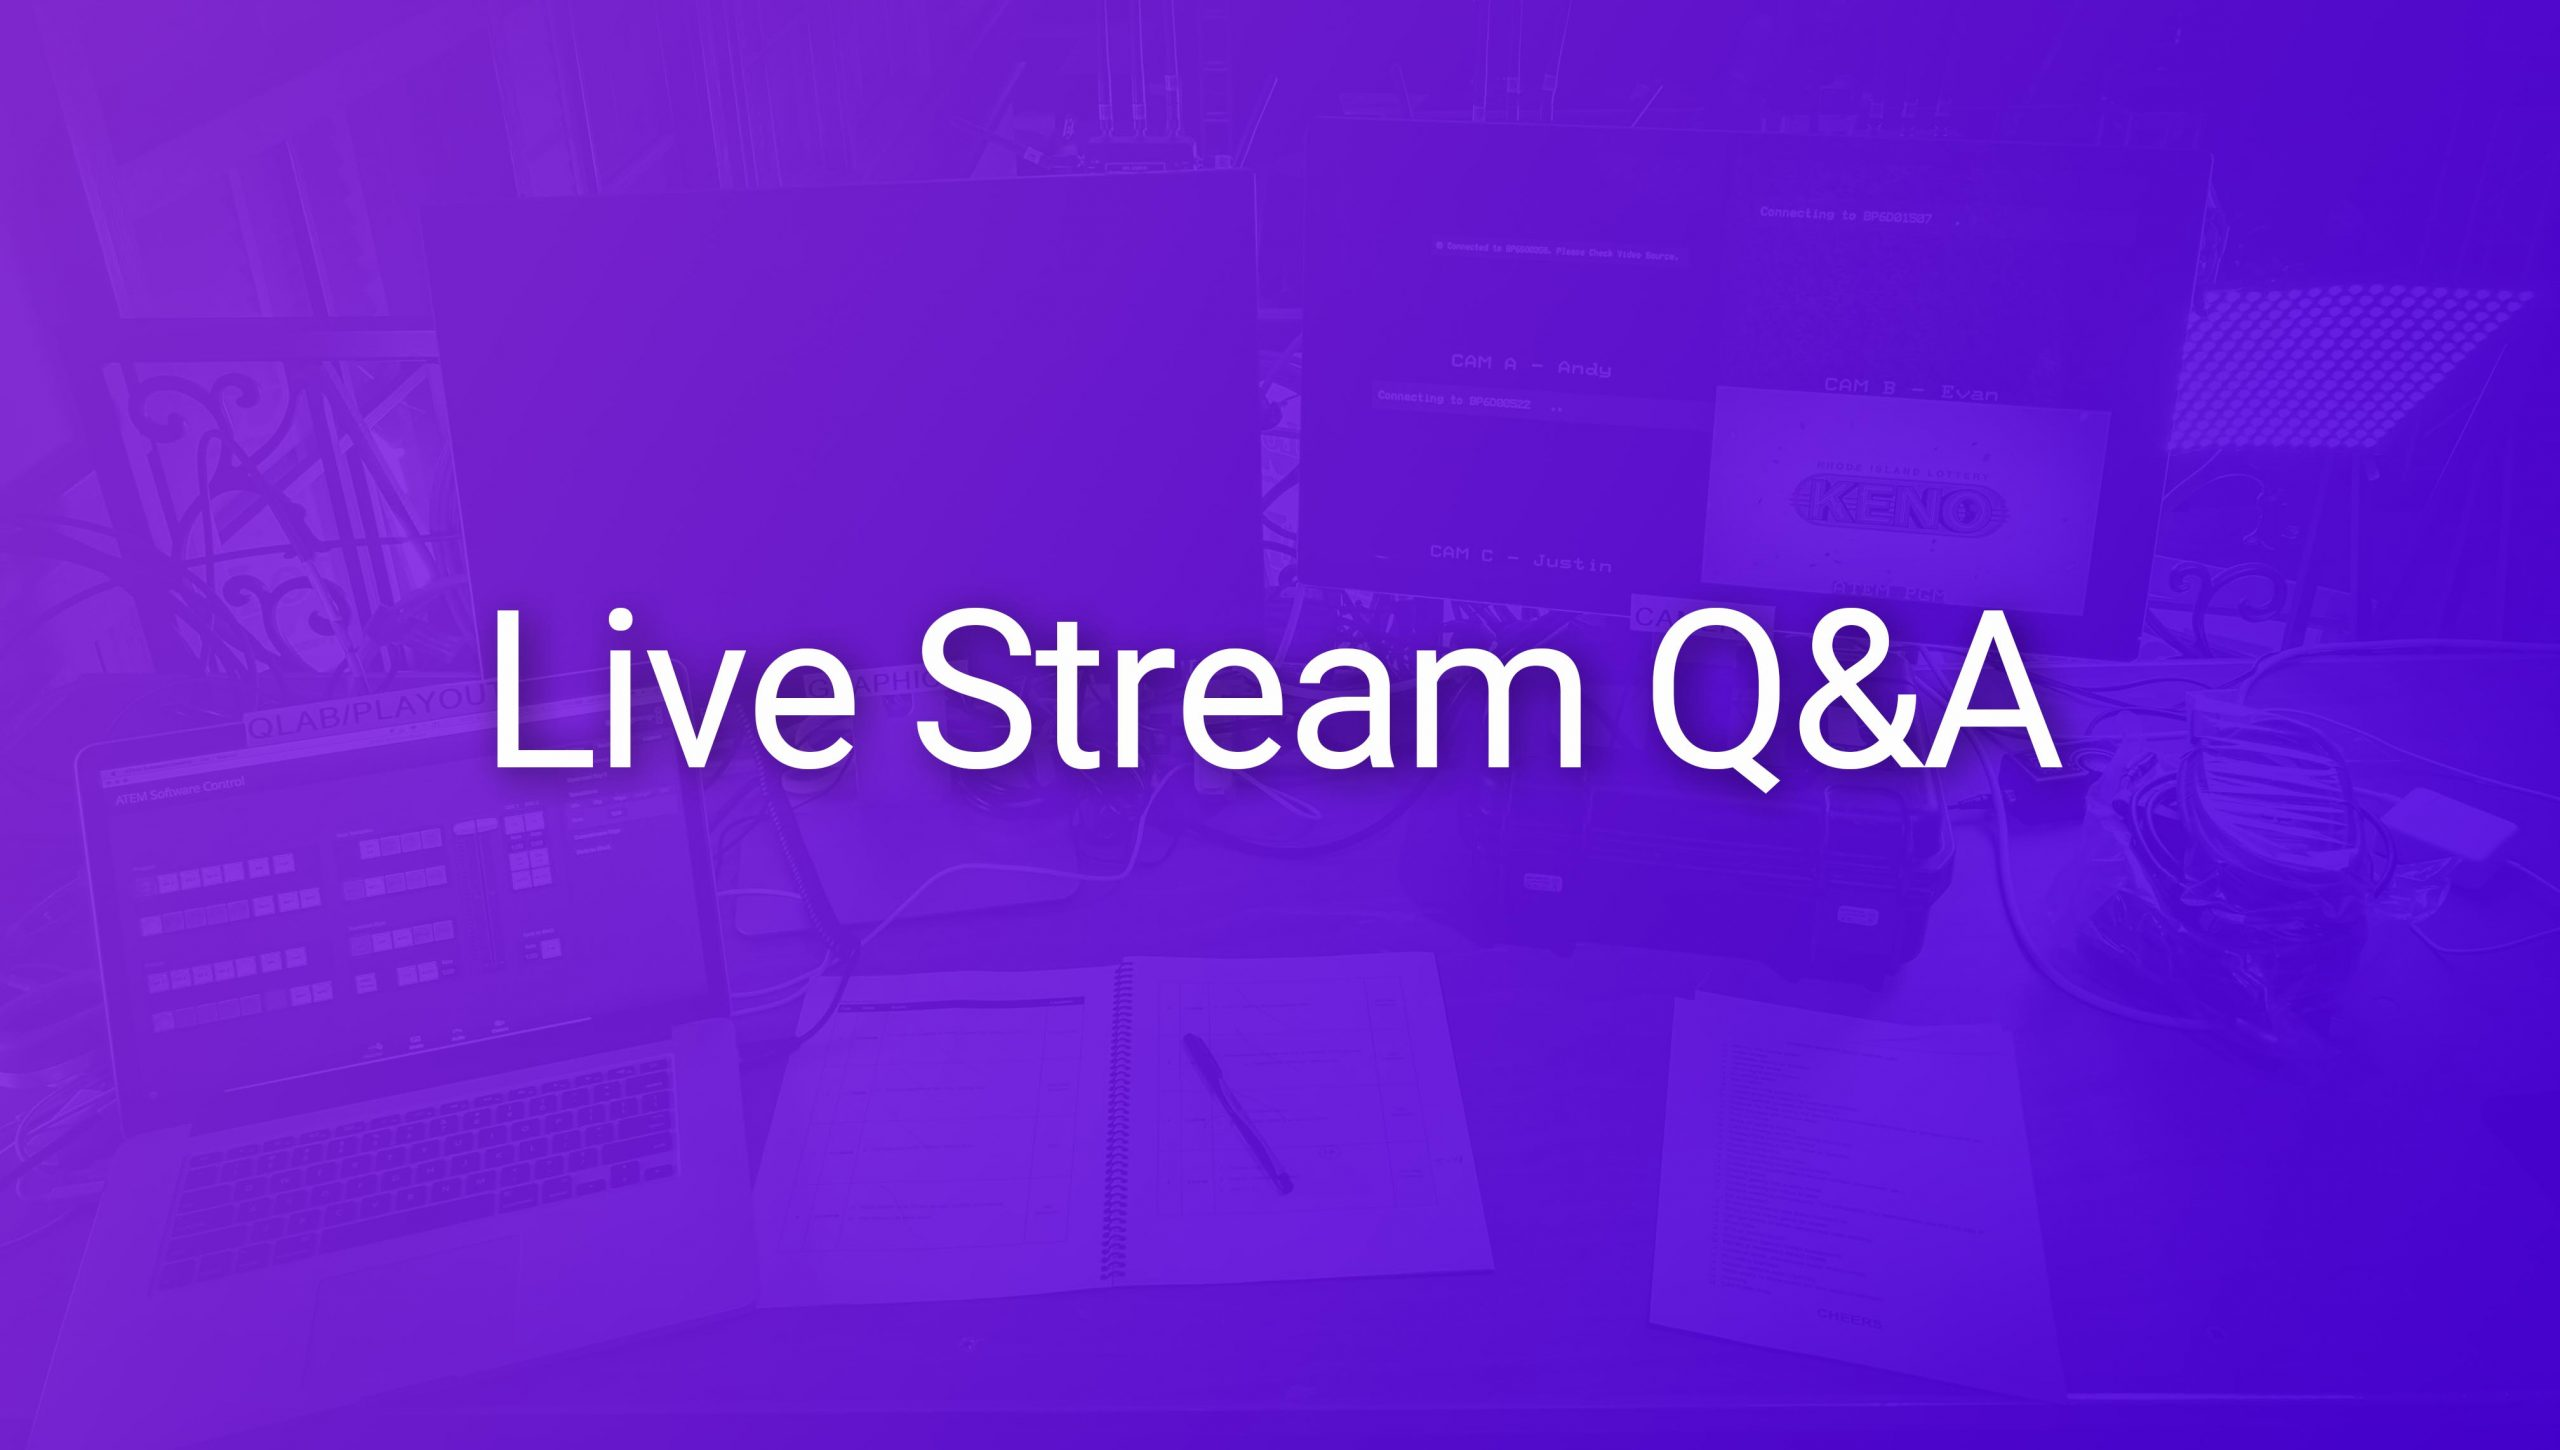 Stream help text over photo of monitors and streaming equipment.